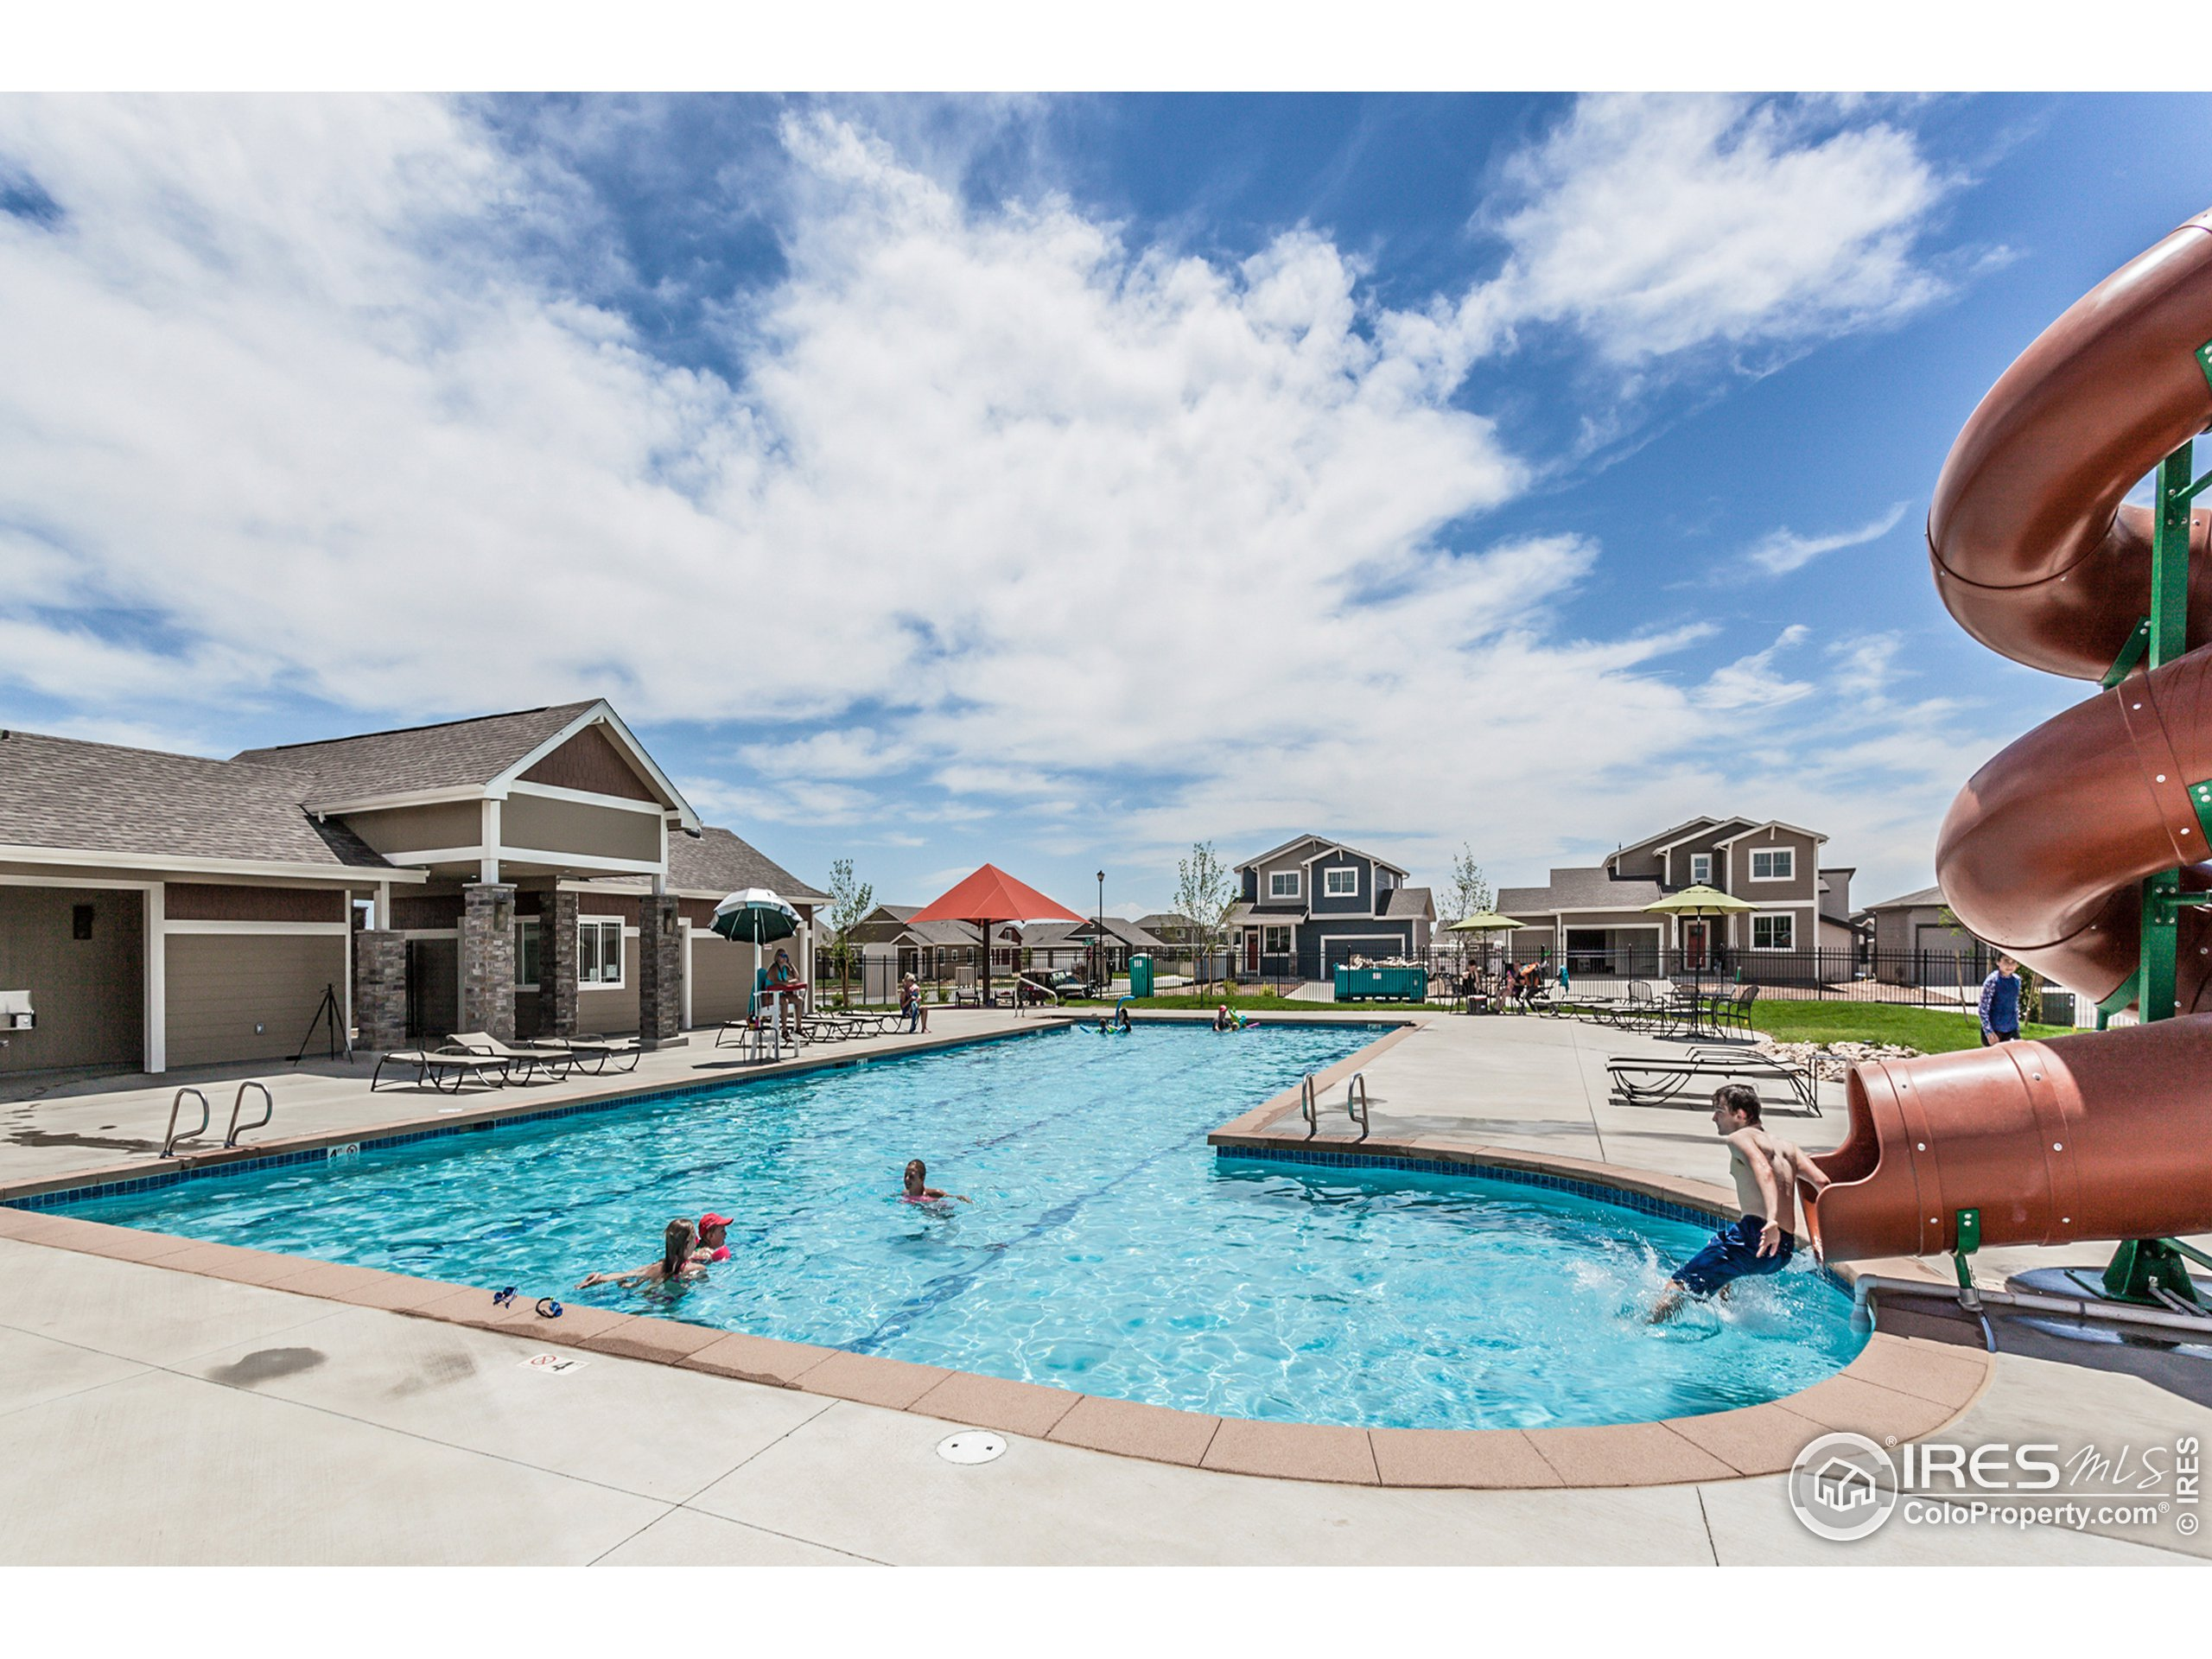 EXAMPLE PHOTO: COMMUNITY POOL INCLUDED IN HOA DUES